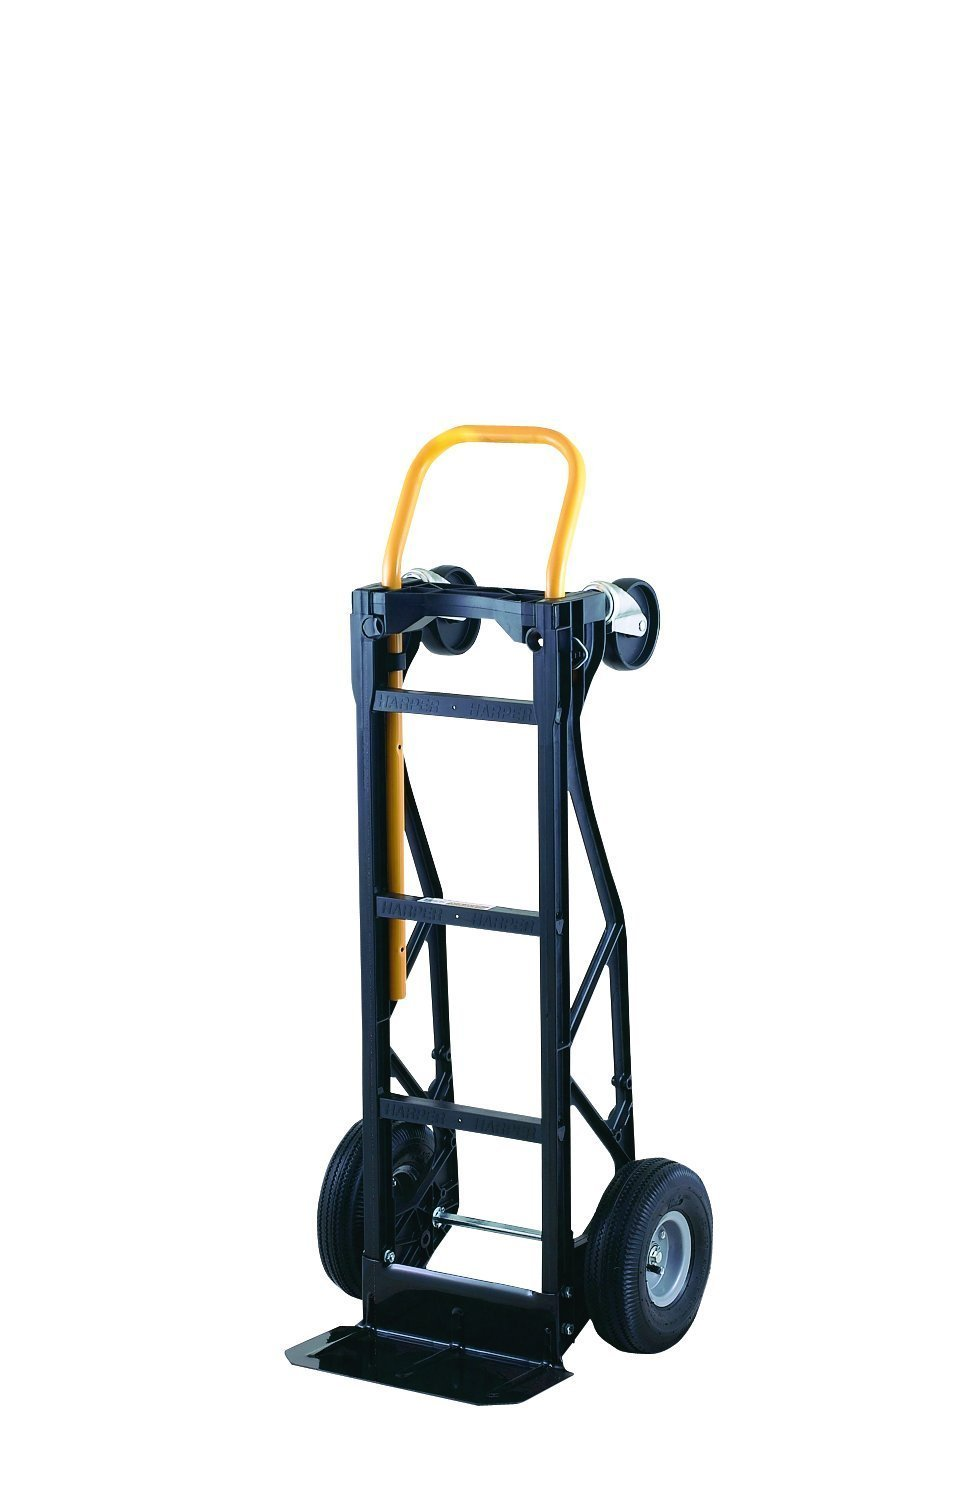 Harper Trucks 700 lb Capacity Glass Filled Nylon Convertible Hand Truck and Dolly with 10'' Pneumatic Wheels by Harper Trucks